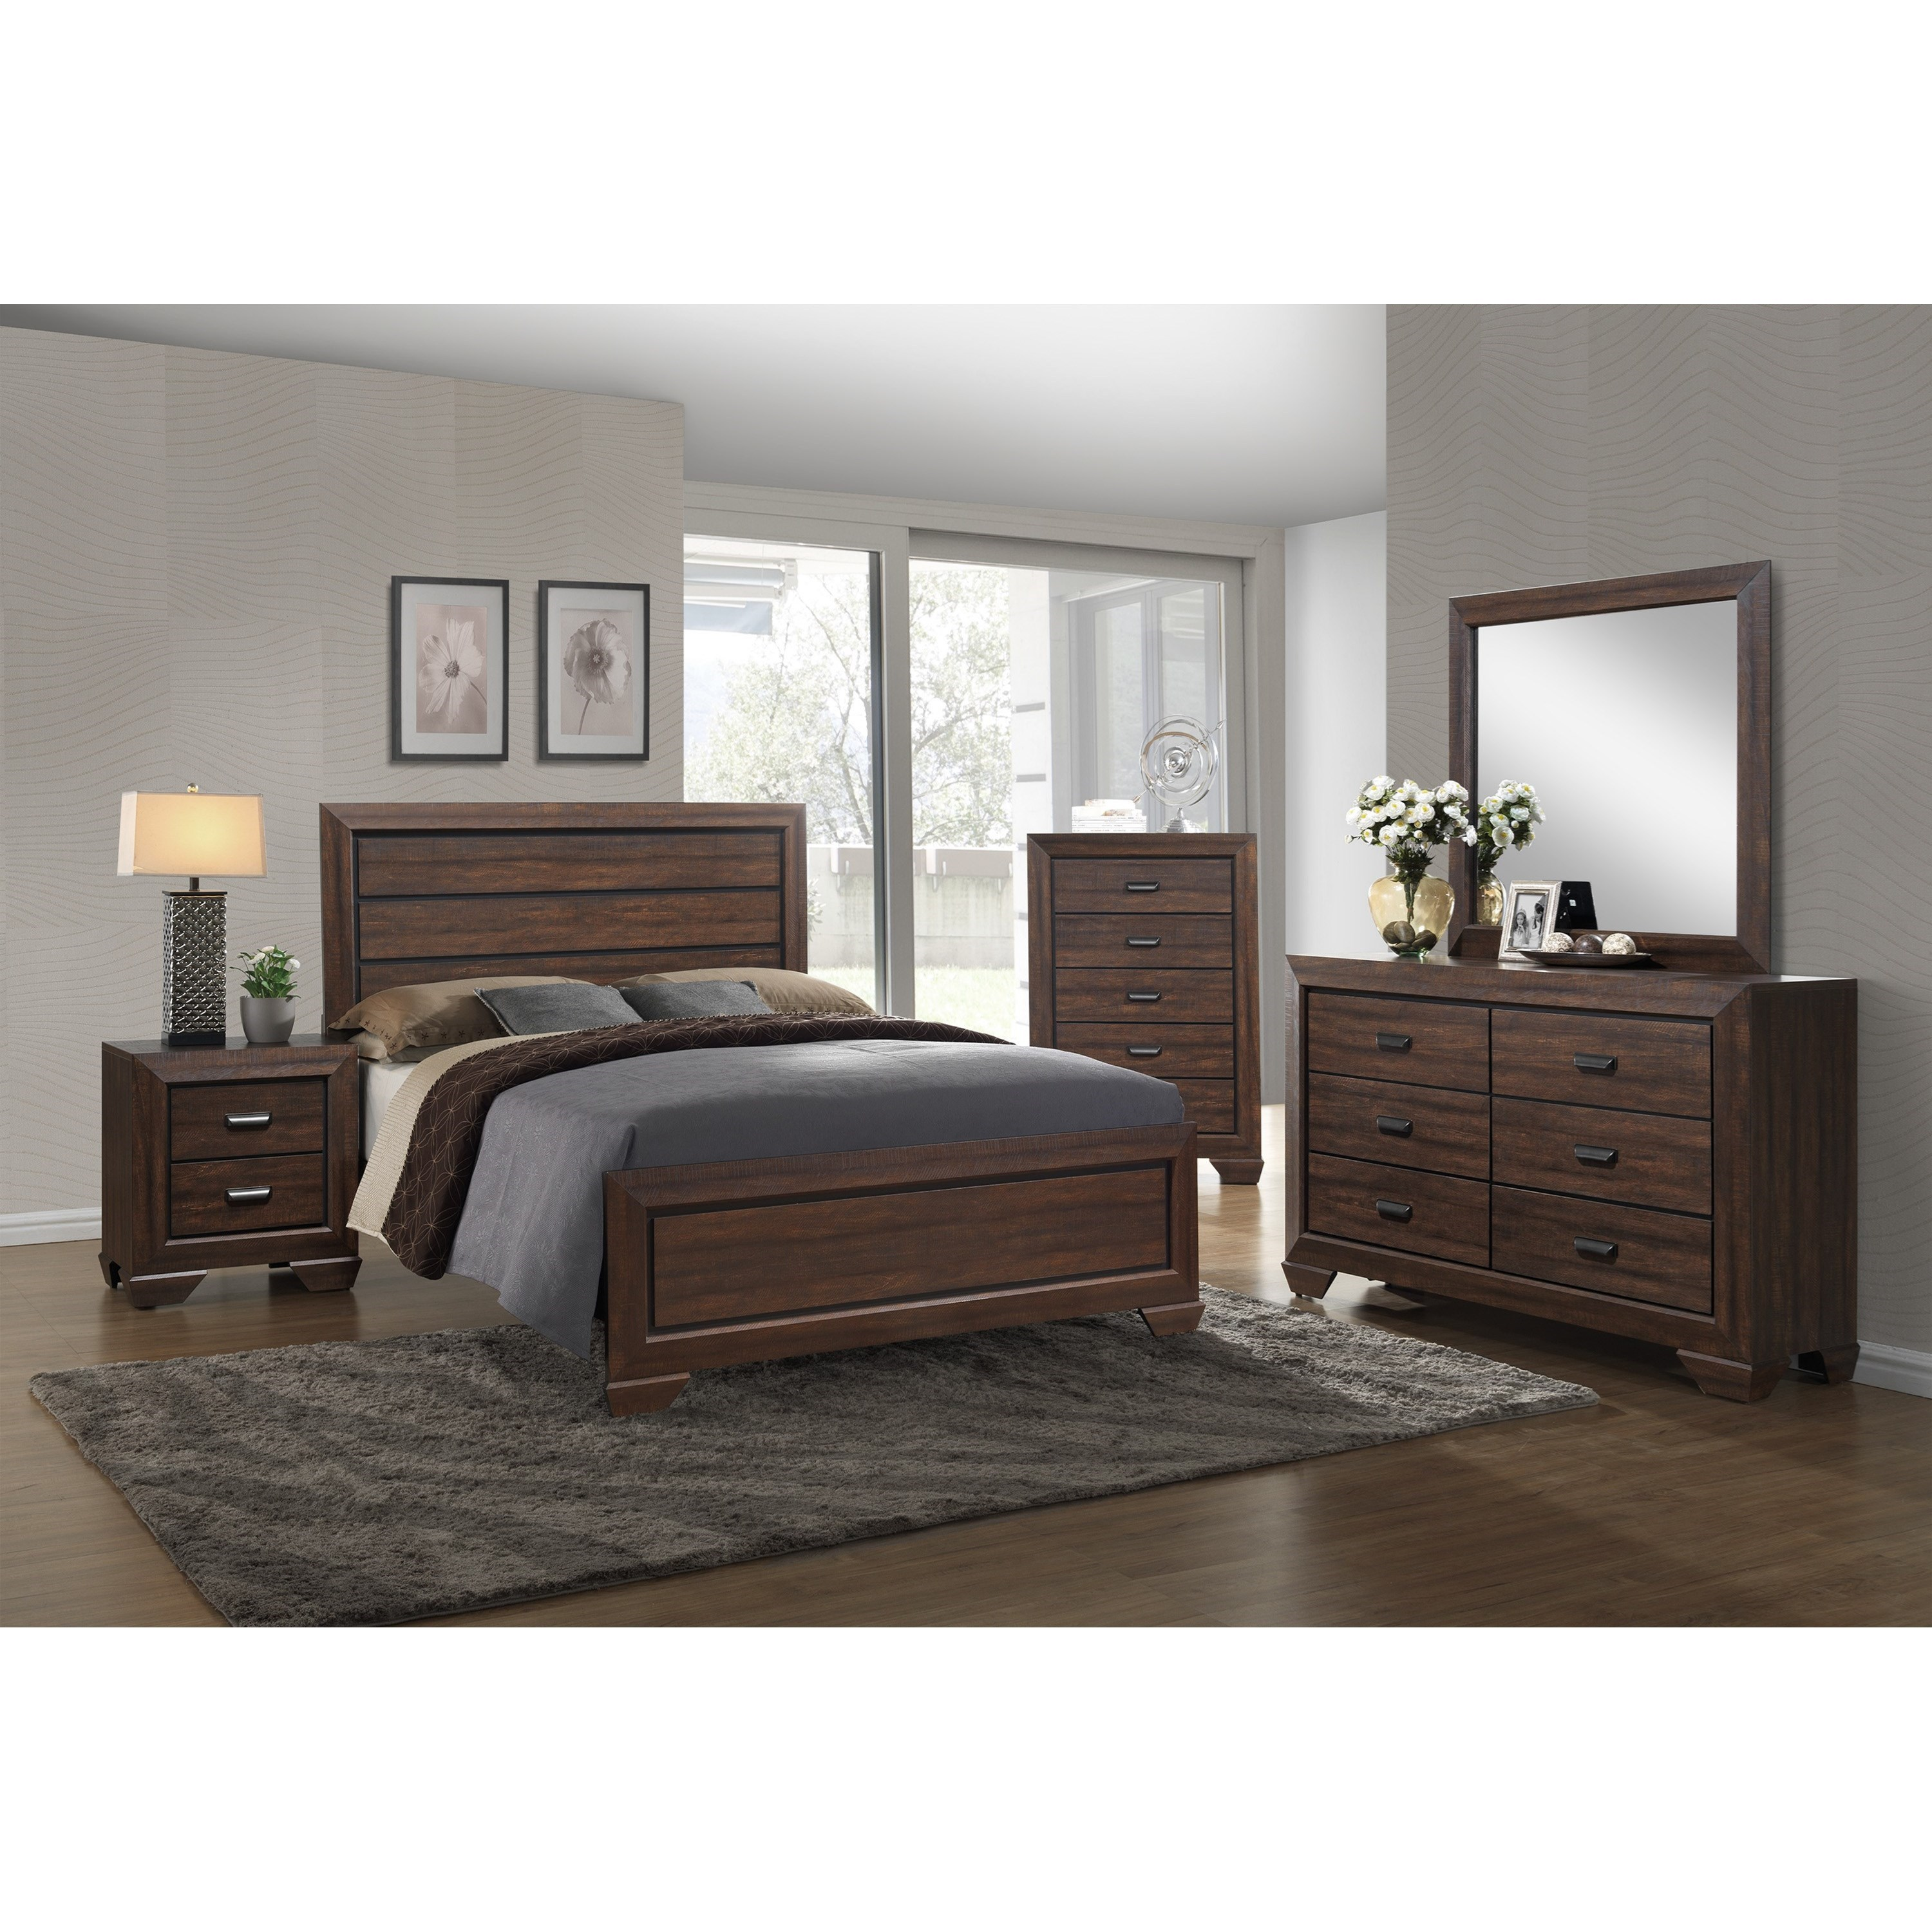 Farrow Full Bedroom Group by Crown Mark at Northeast Factory Direct